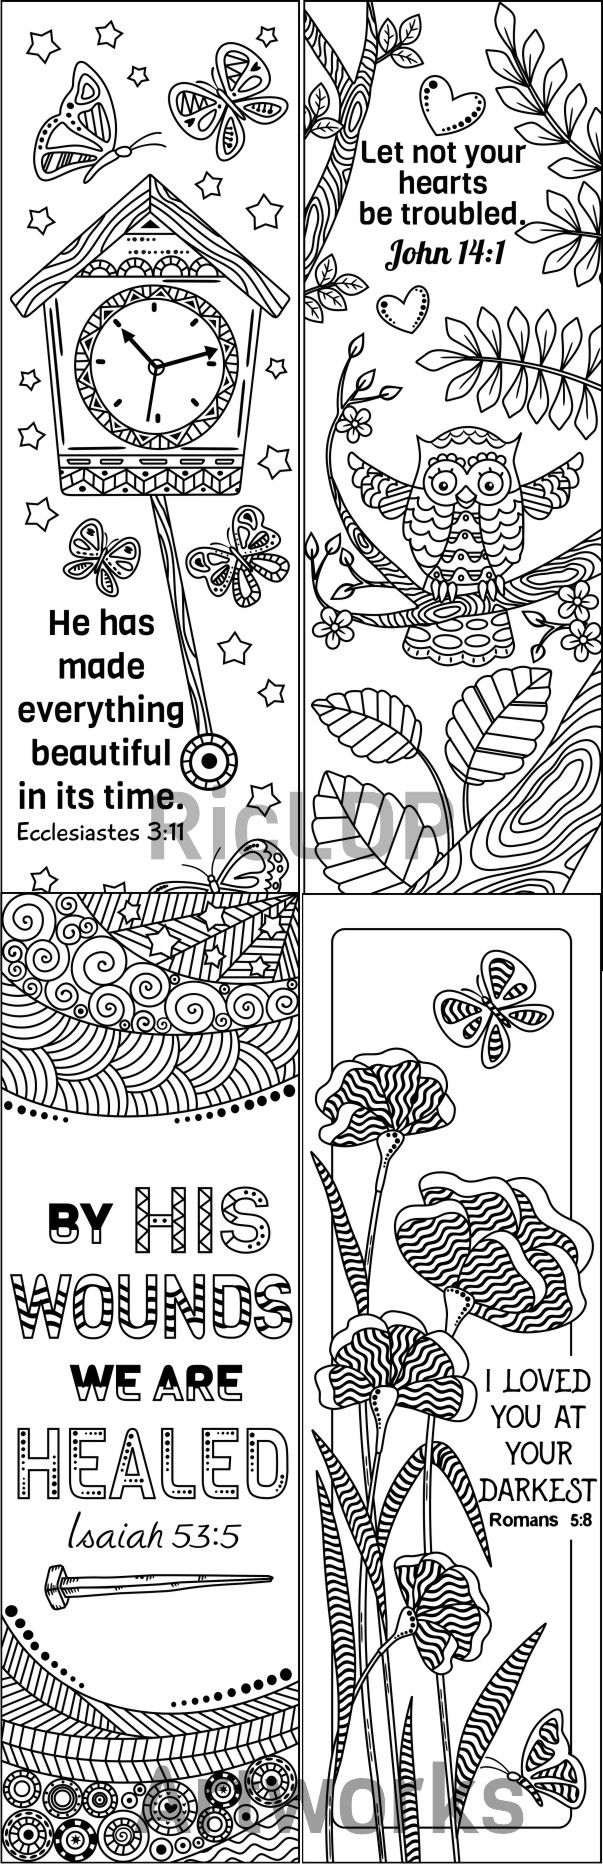 pin by ricldp artworks on bookmarks pinterest bible